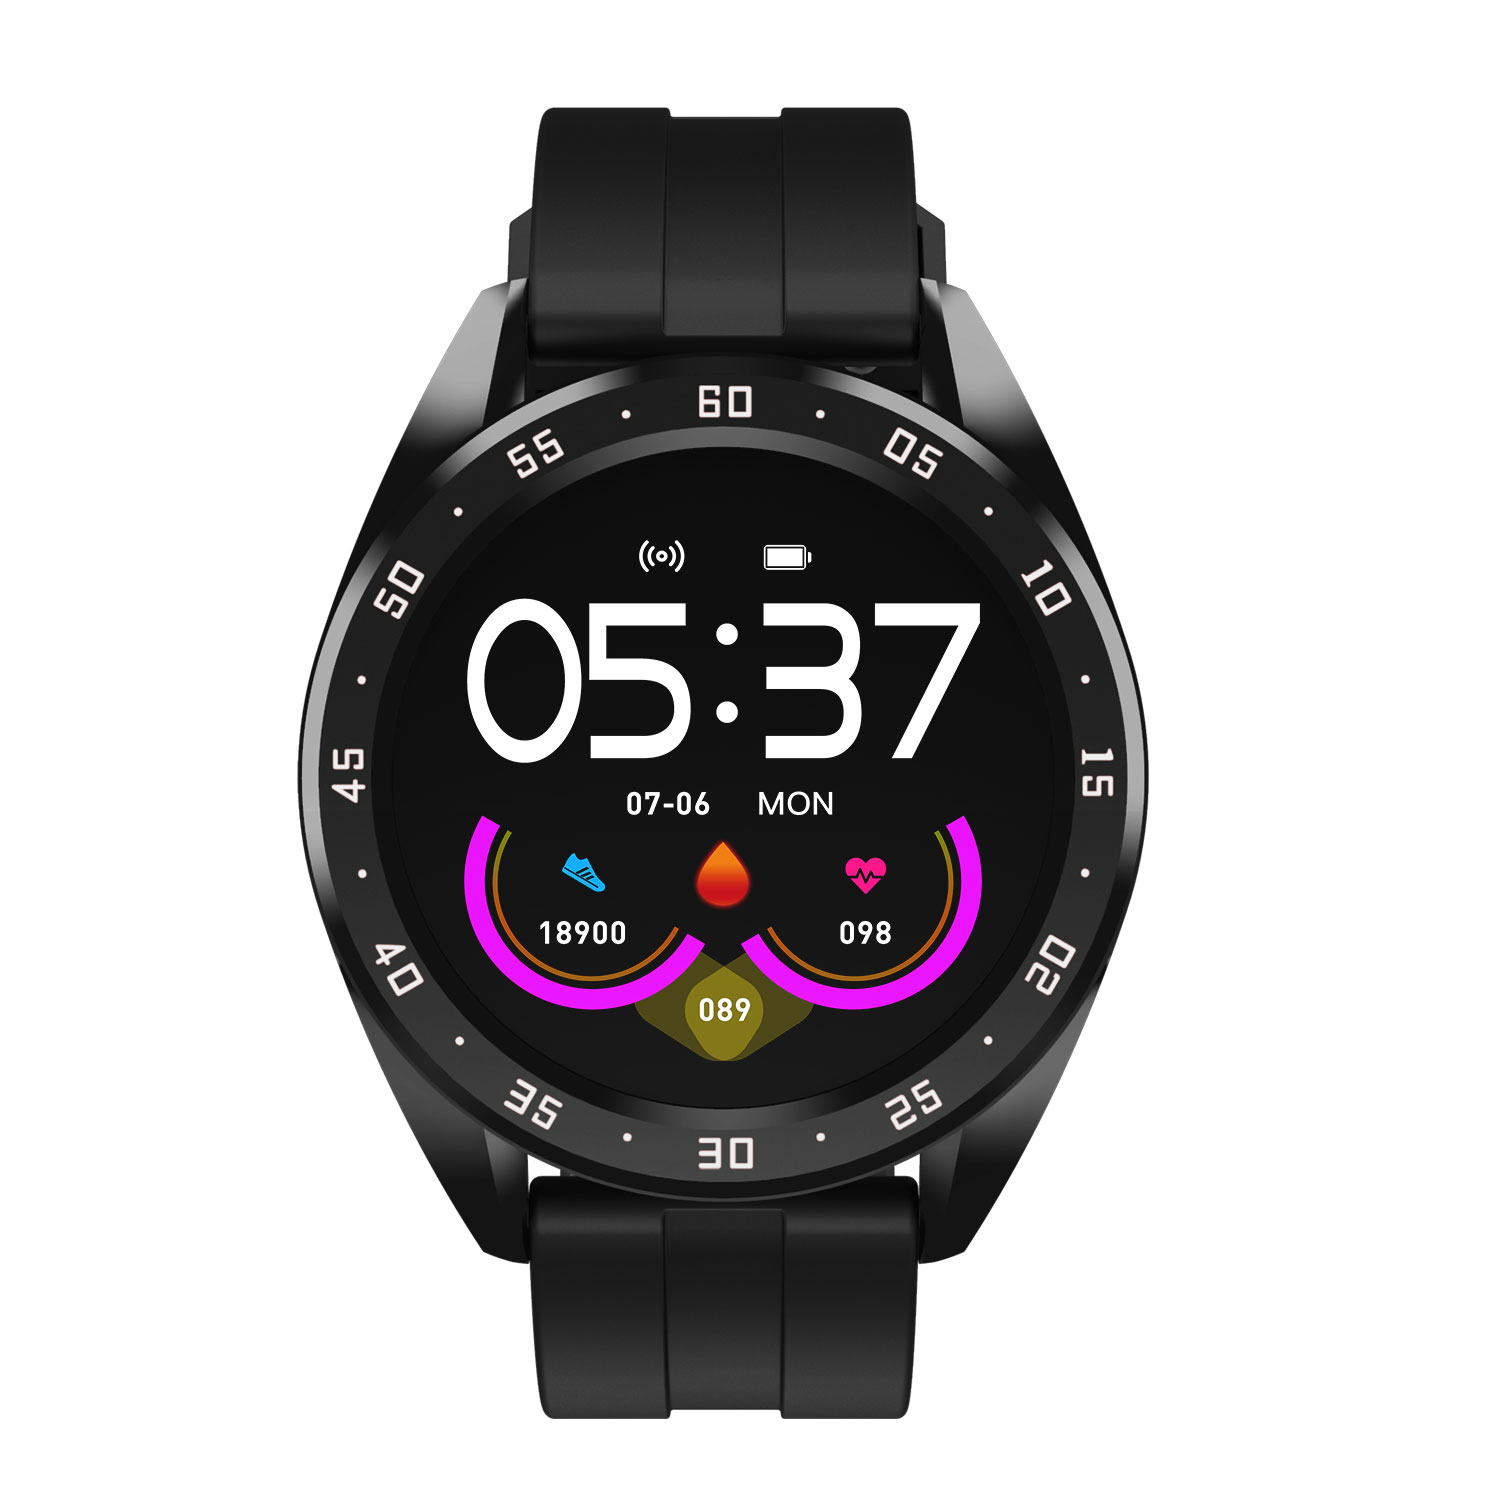 smartwatch <strong>promotion</strong> 2020 smart bracelet <strong>x10</strong> sport fitness watch with pedometer